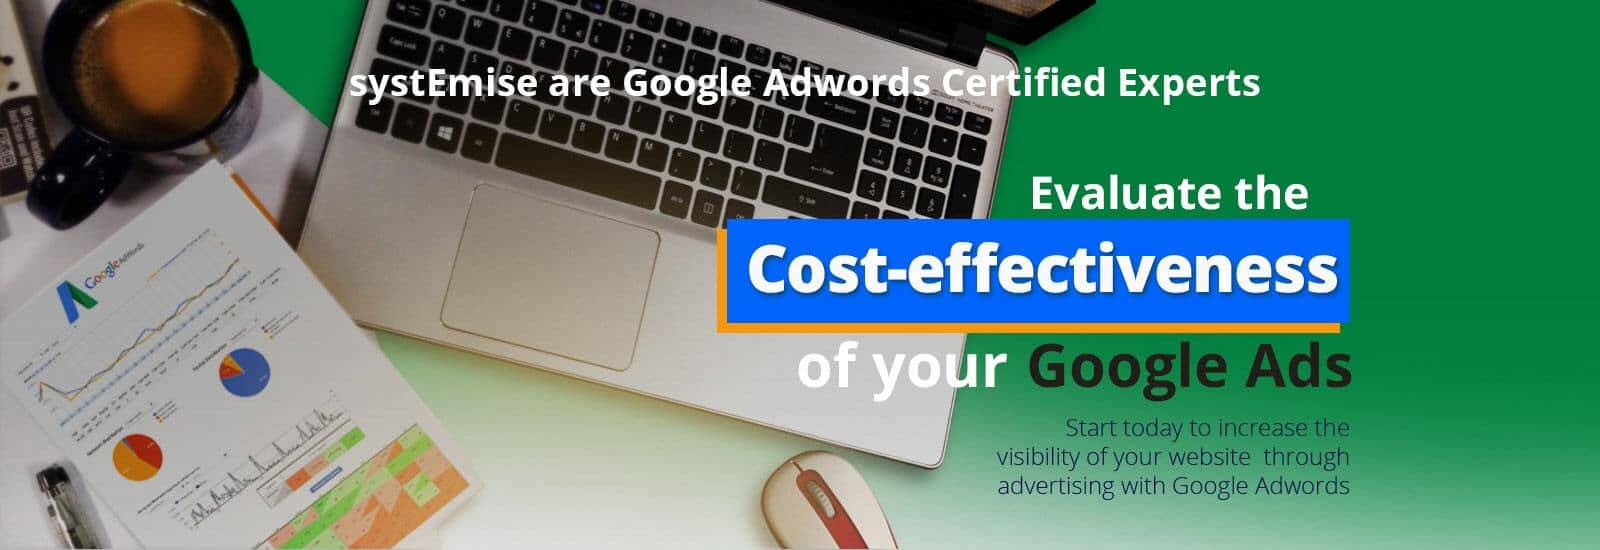 Cost-Effectiveness-photo-slider